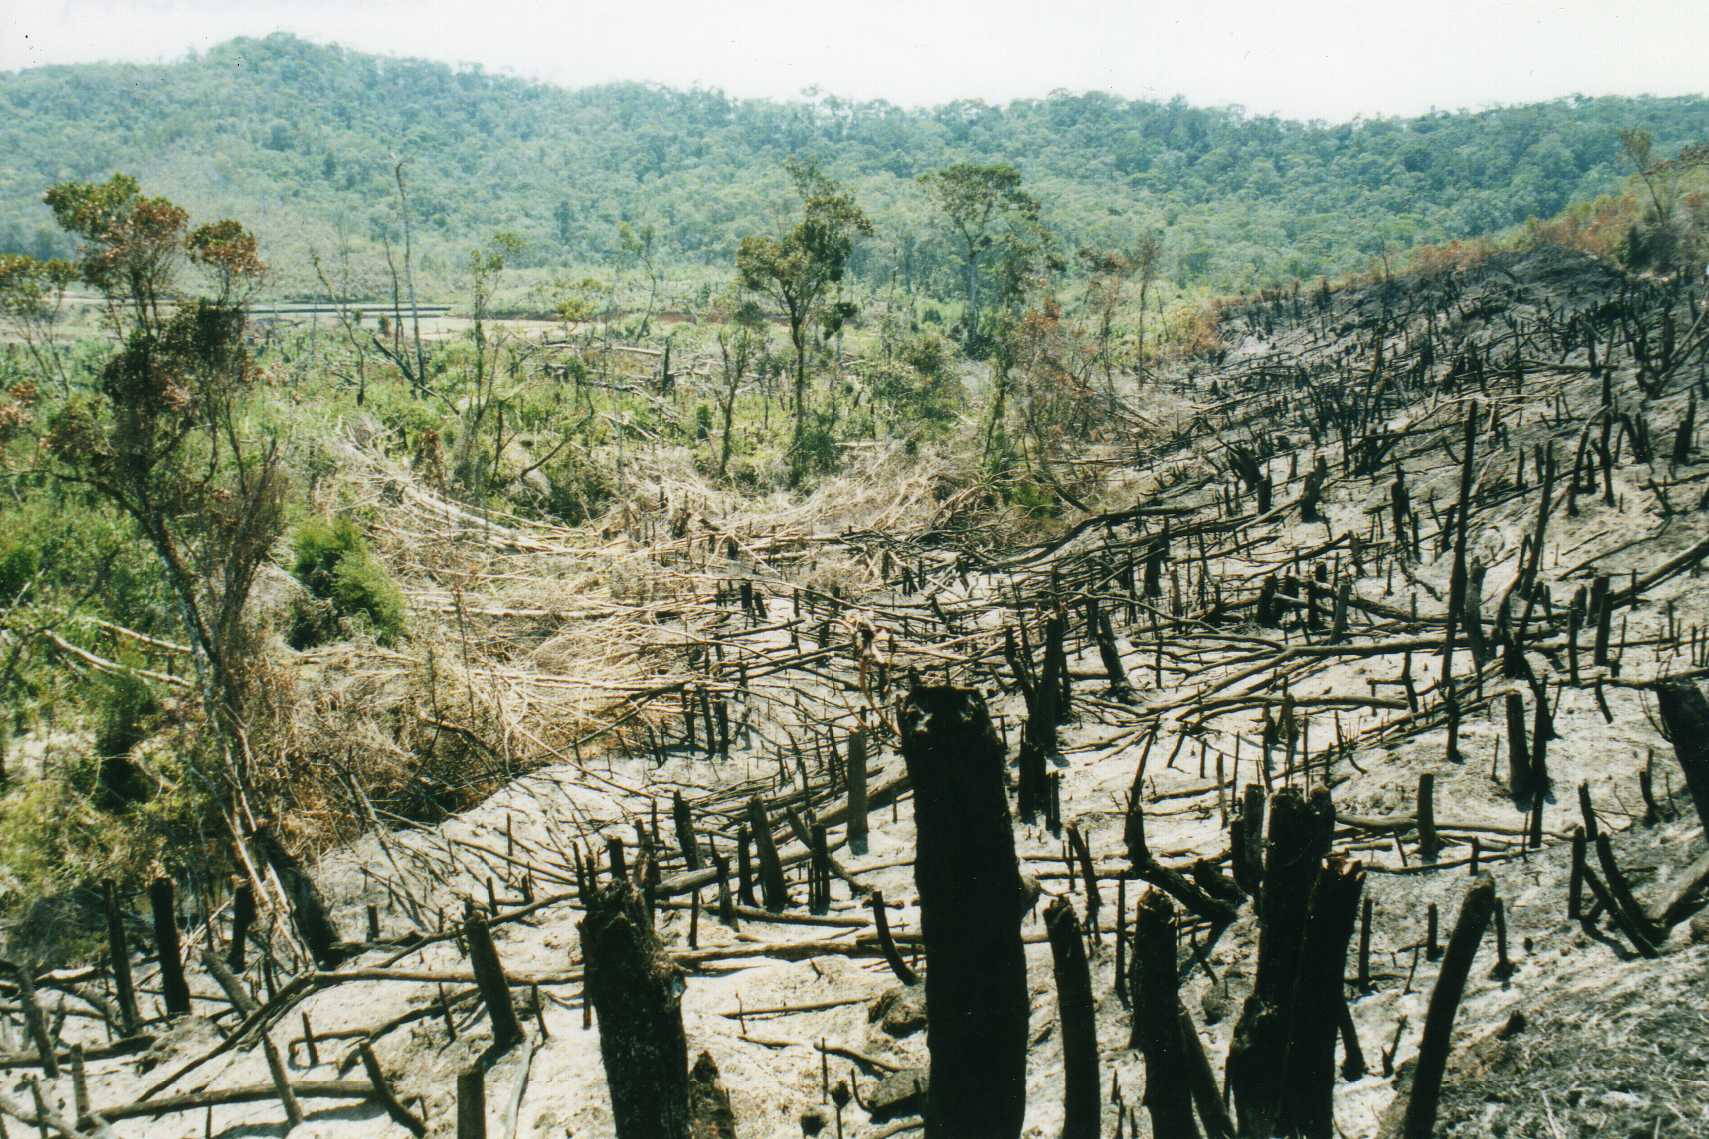 Slash and Burn Agriculture - The Arson Of Mother Nature for Profit!